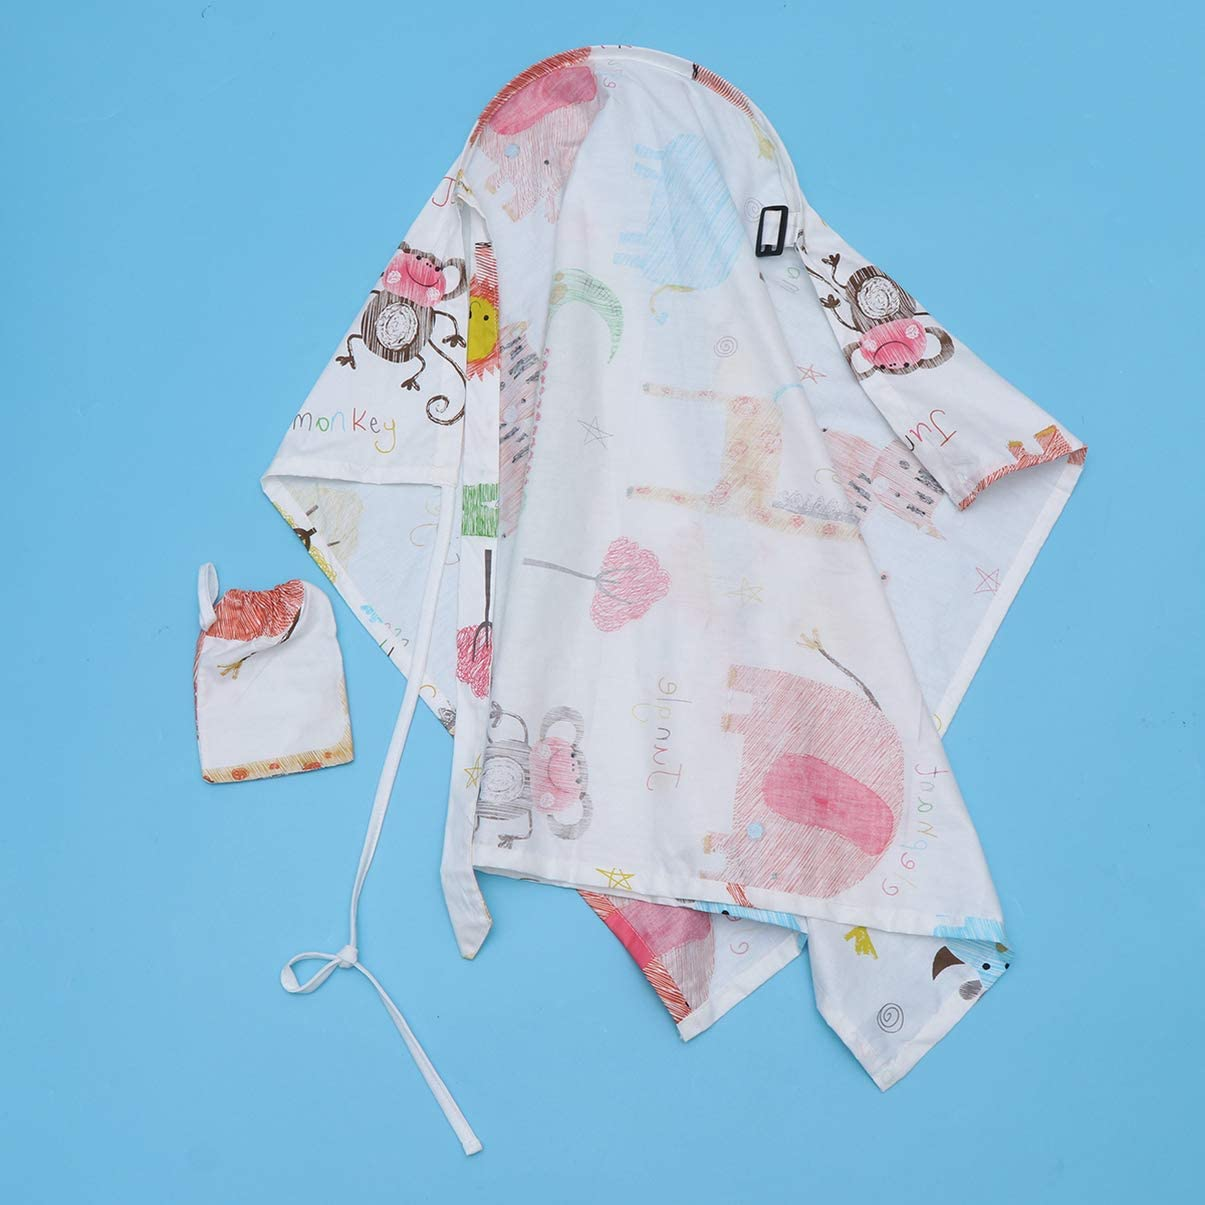 Healifty Baby Nursing Cover Breastfeeding Poncho for Baby Car Seat Canopy Shopping Cart Cover Stroller Cover Baby Shower Gift Crown